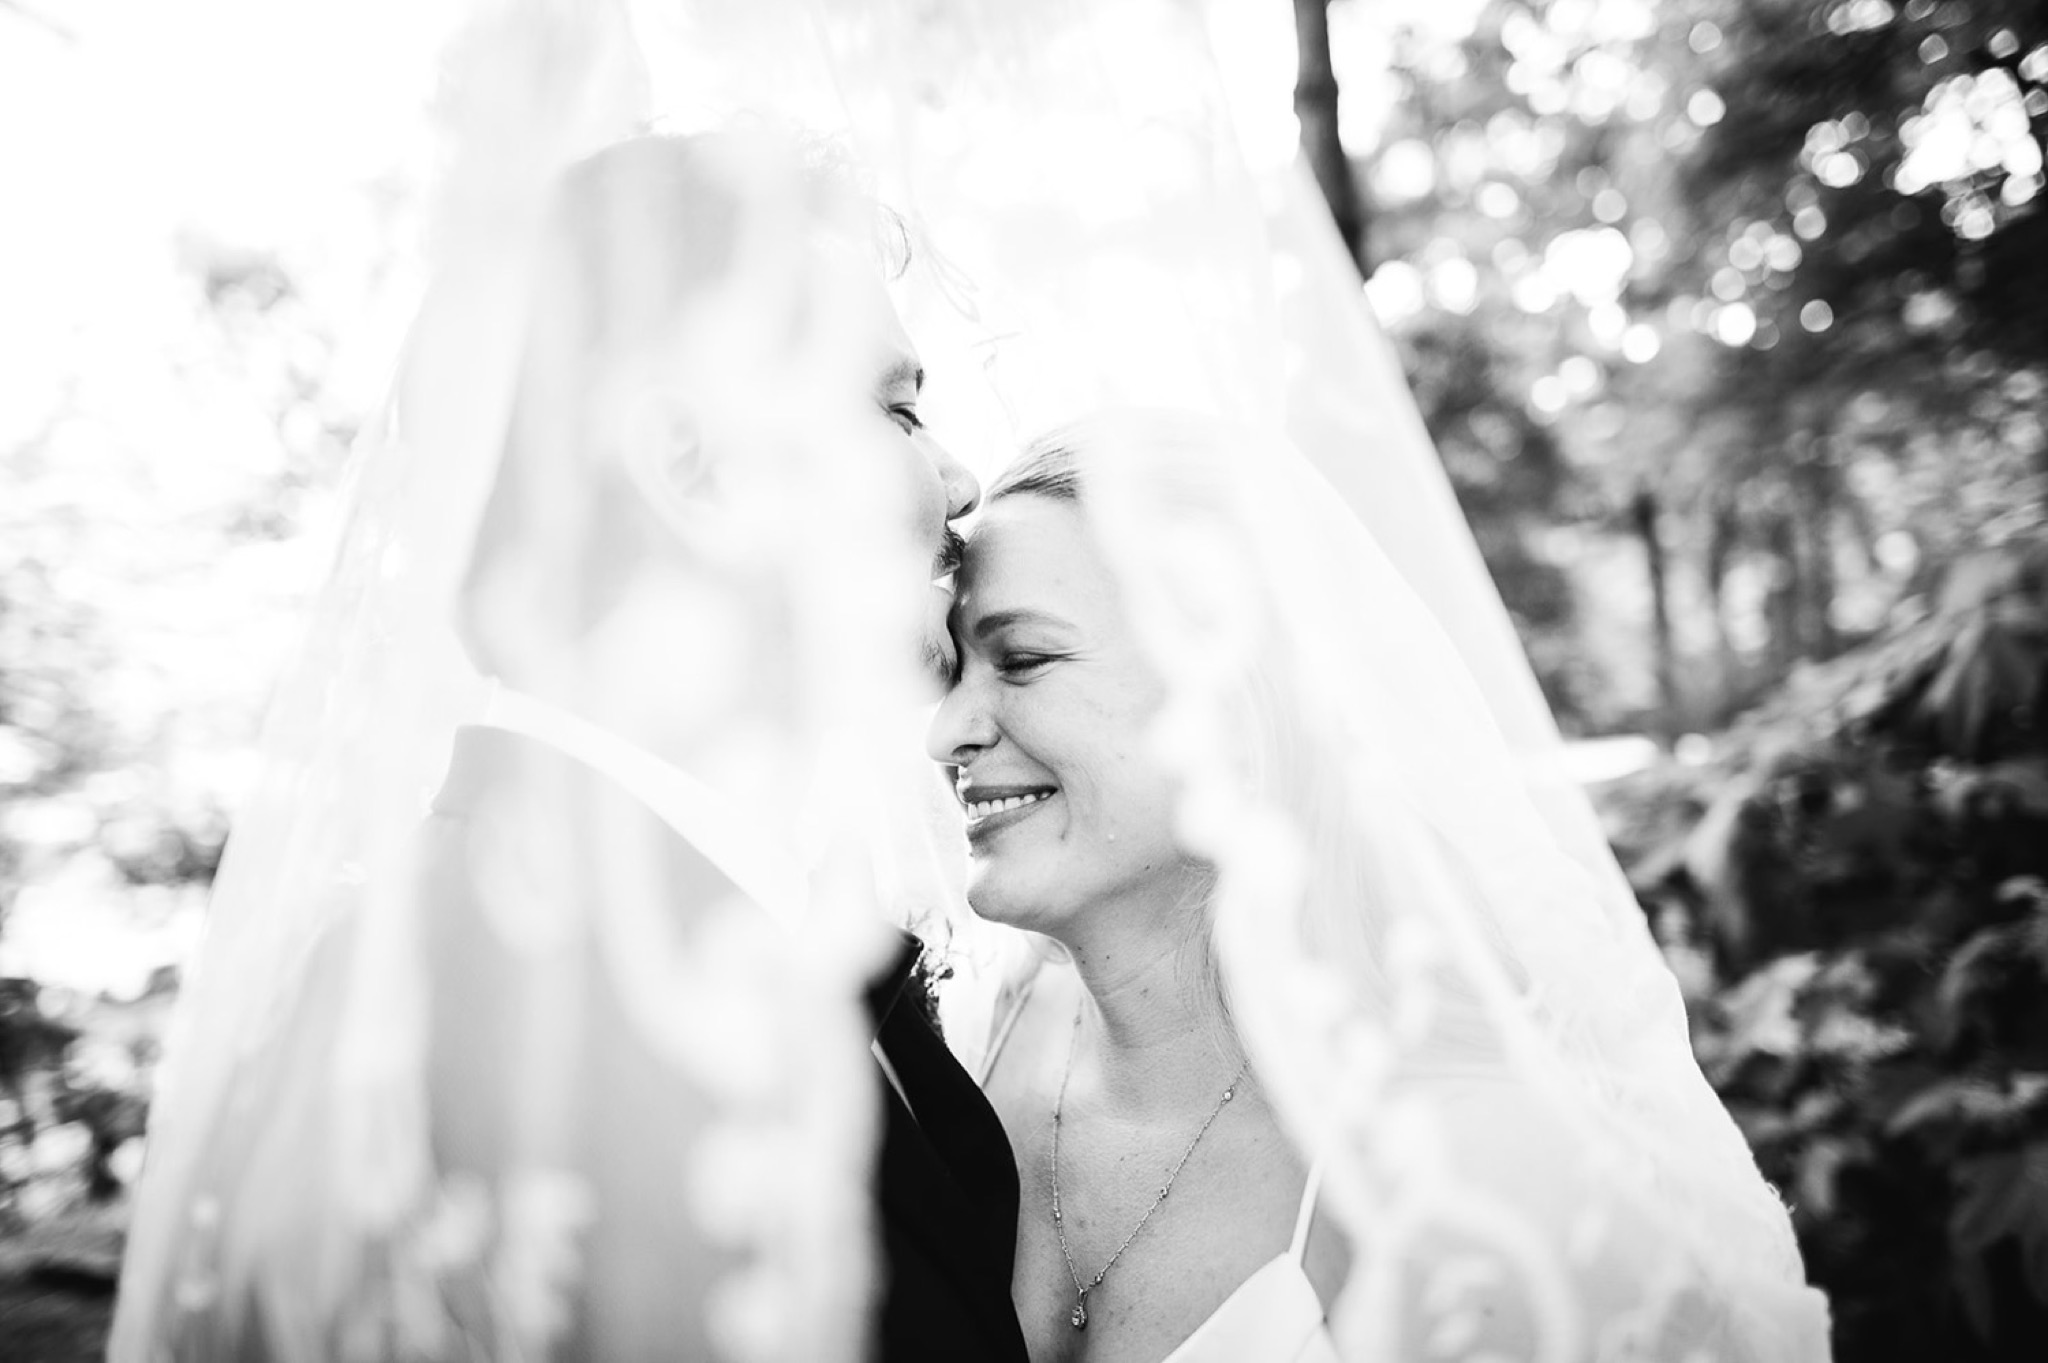 under lacy bridal veil groom kisses bride's forehead as she grins